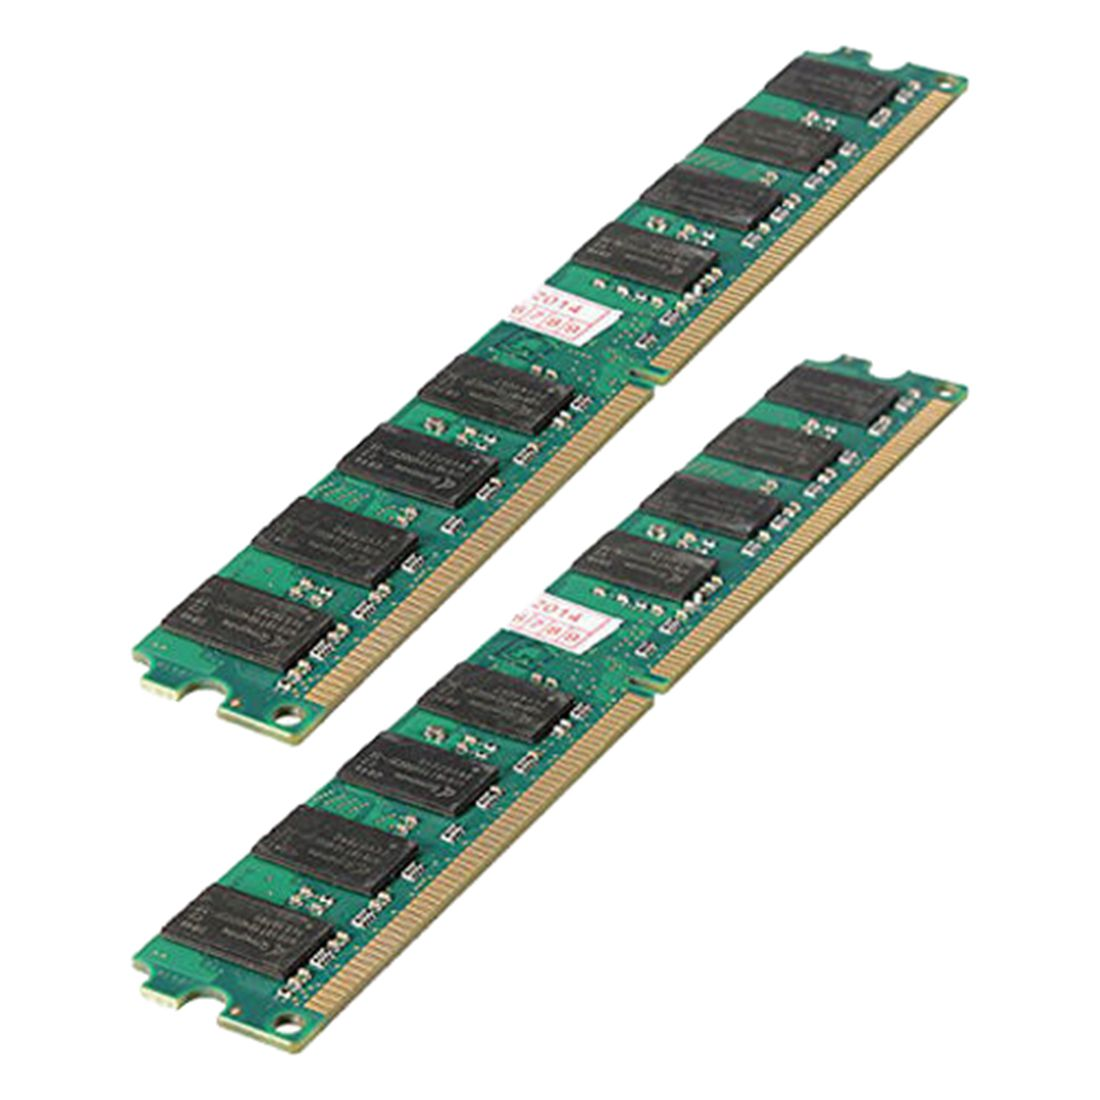 <font><b>4GB</b></font>(2X2 Gb)MEMORIA MEMORY <font><b>RAM</b></font> PC2 5300 667Mhz <font><b>DDR2</b></font> 240PINES FOR AMD PC HIGH DENSITY,green image